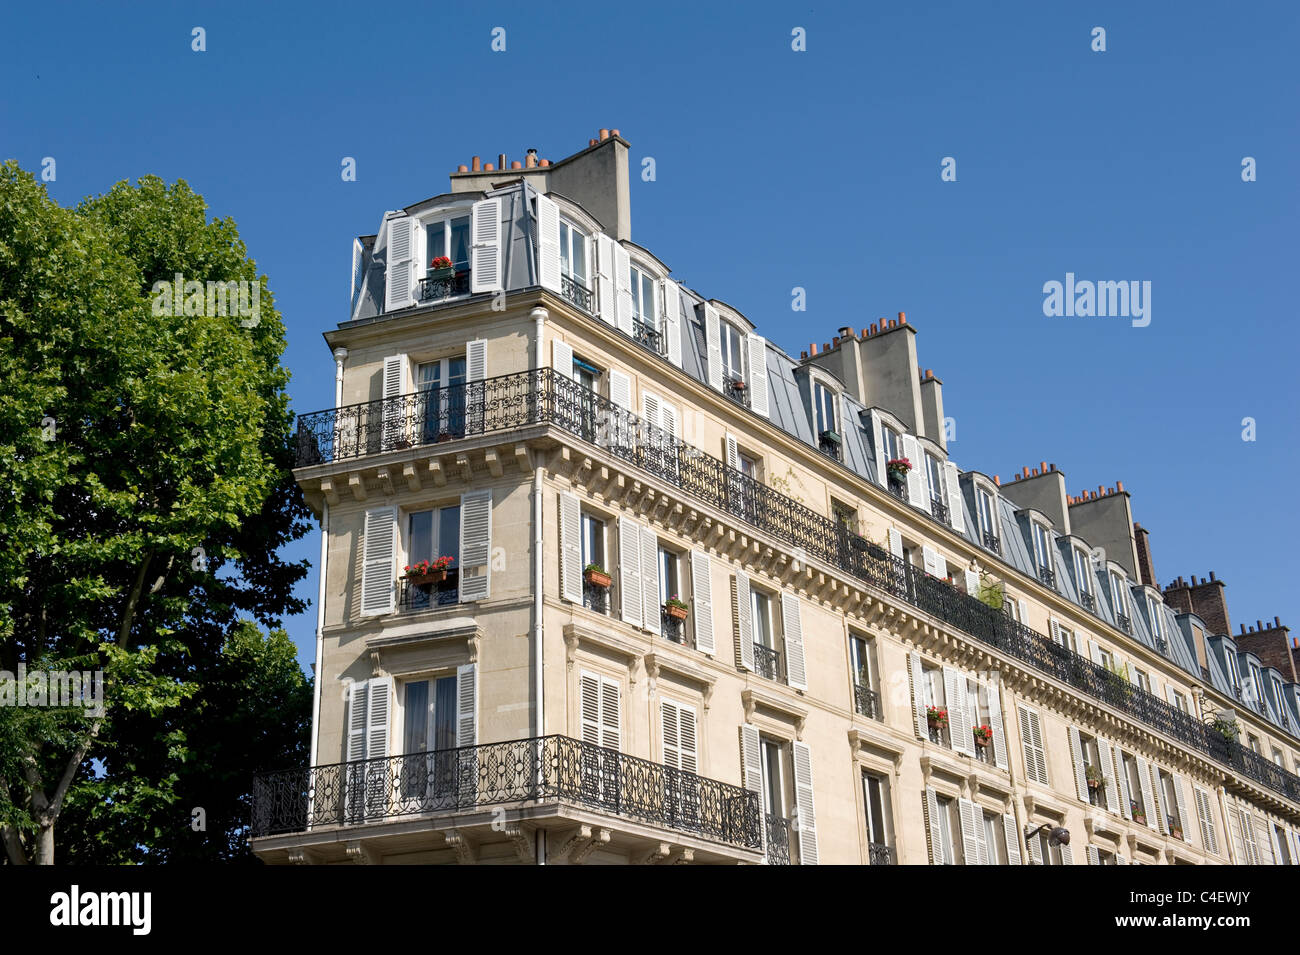 Art Nouveau facade at Boulevard de Magenta, corner rue Guy Patin, in Paris near Gare du Nord - Stock Image